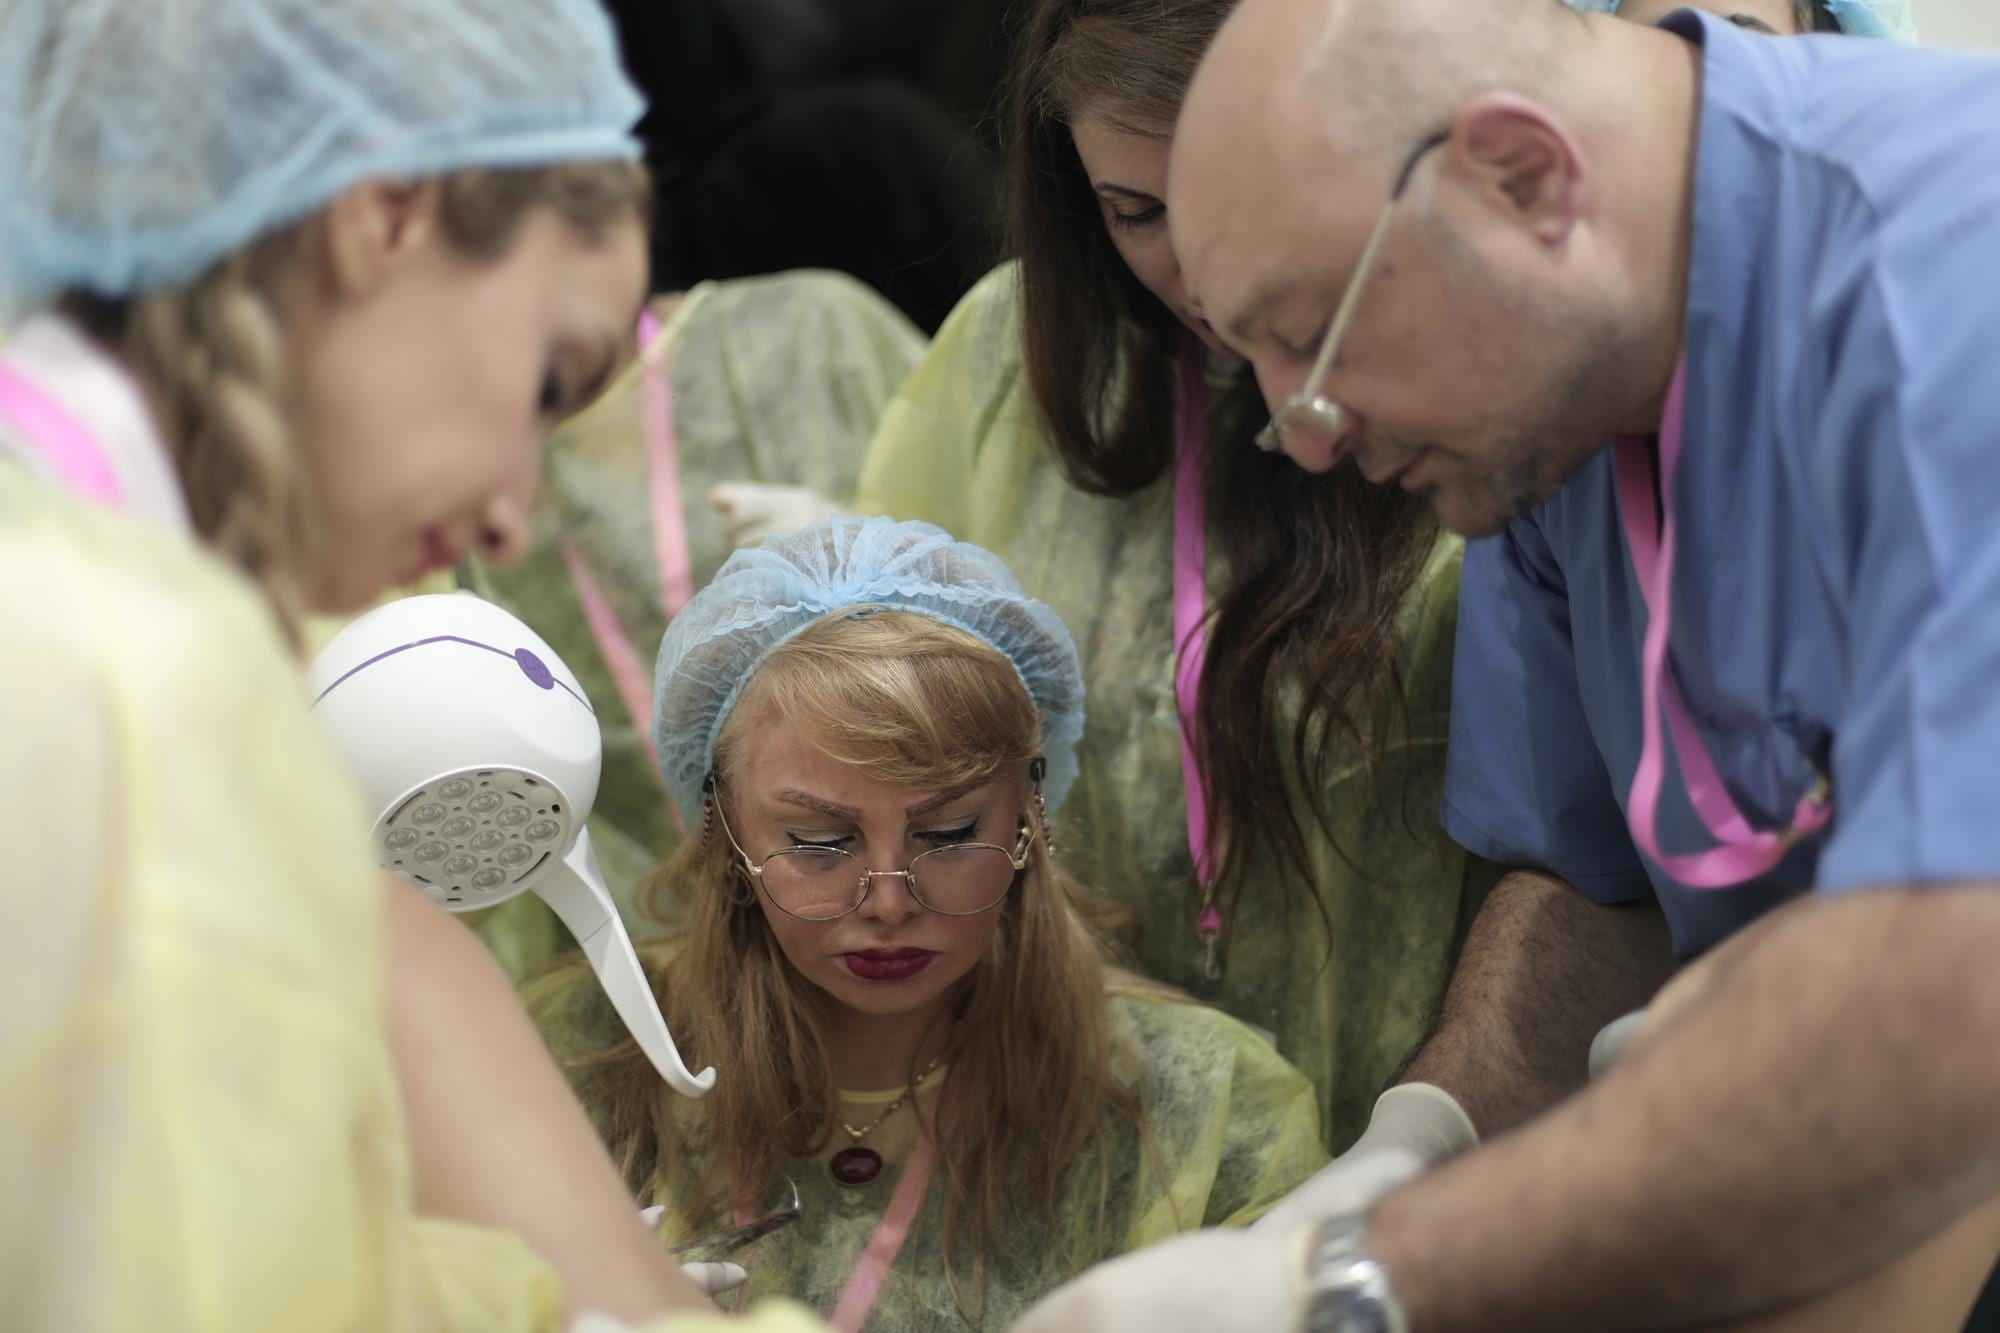 Fellowship in cosmetic gynecology by american aesthetic association with hands-on training. aesthetic medicine, aesthetic gynecology, gynaecology by american aesthetic association